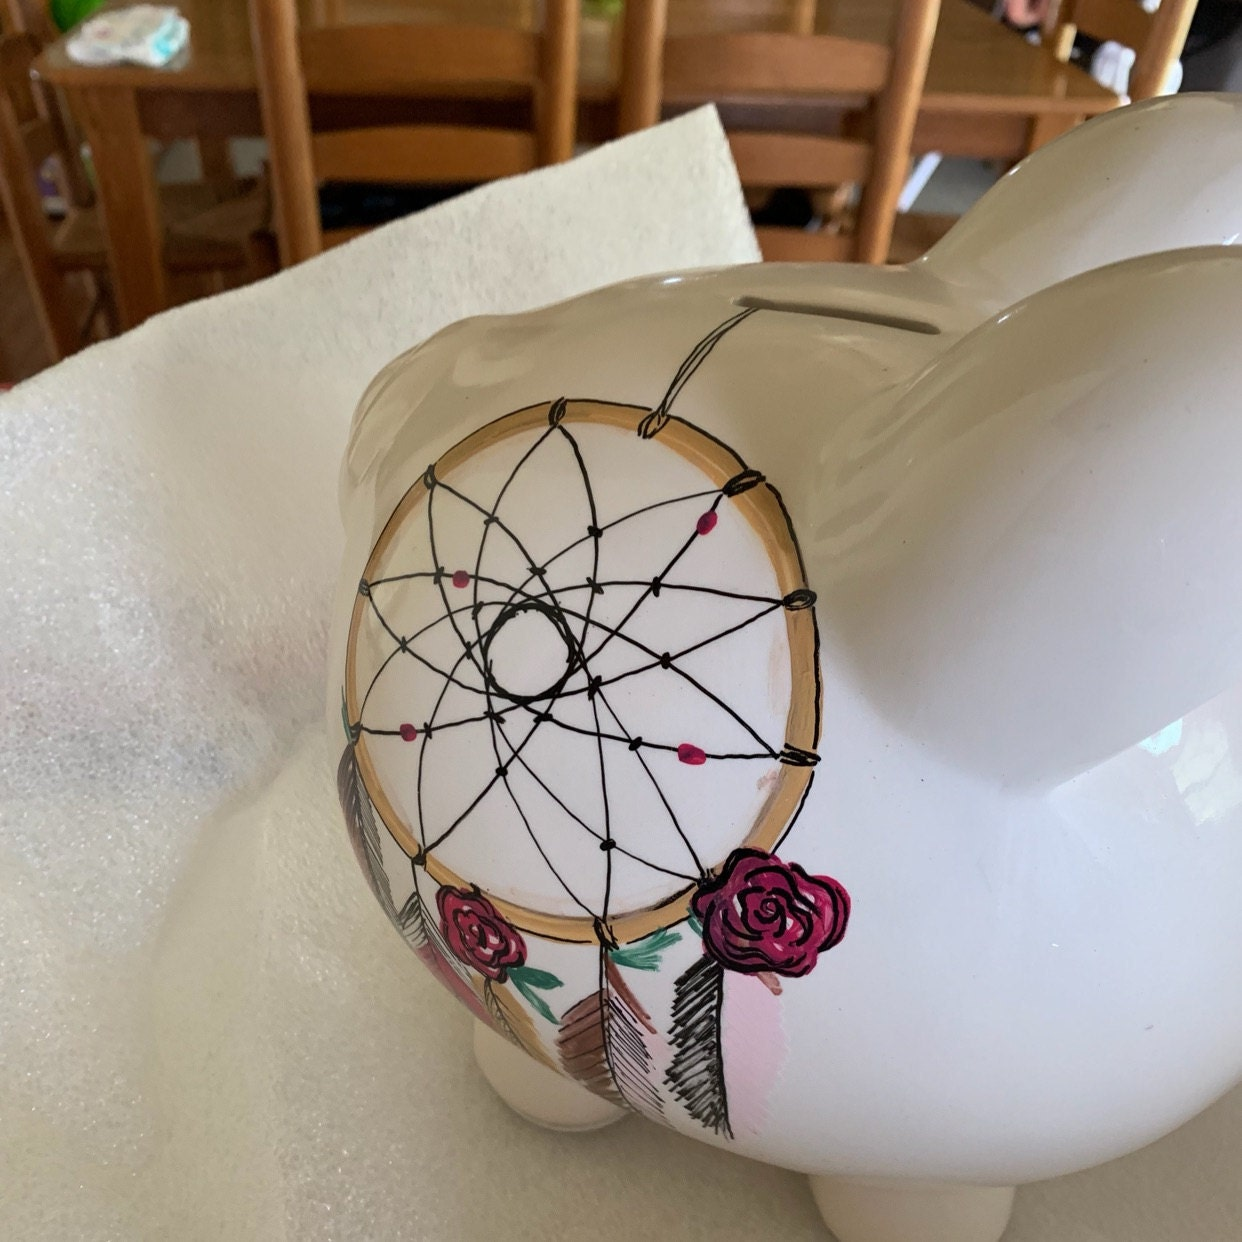 Virginia Howell added a photo of their purchase